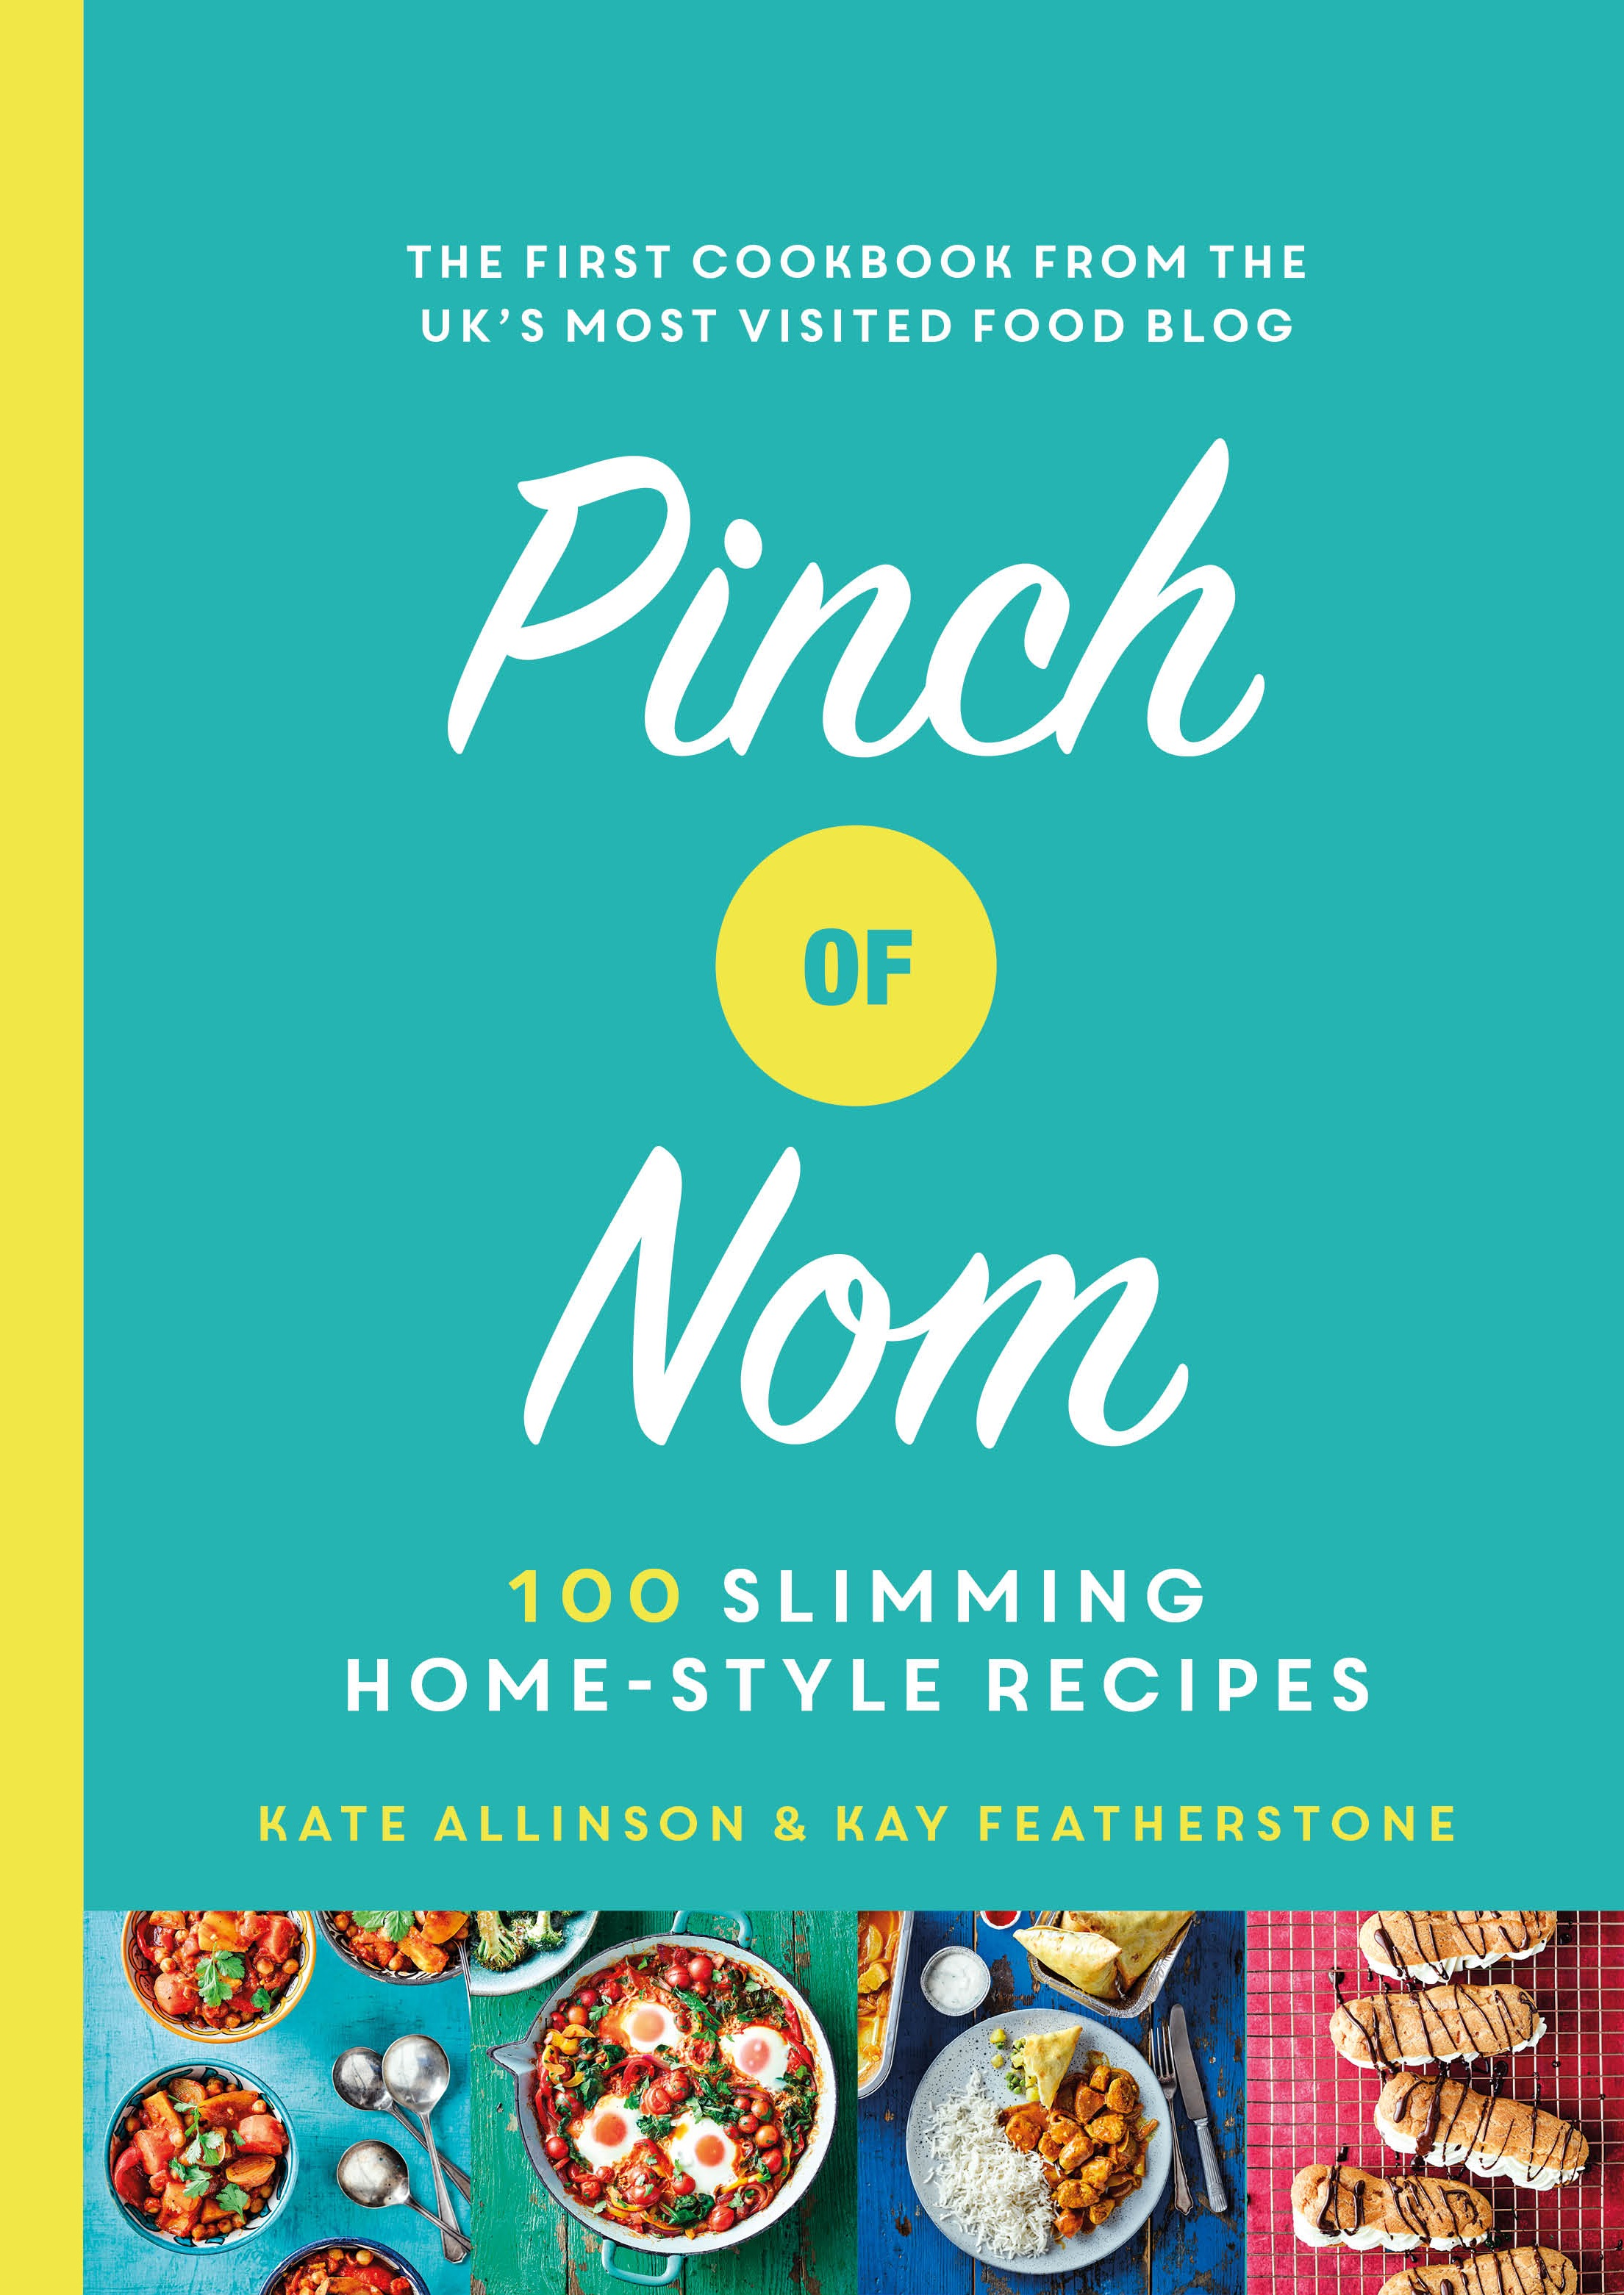 Signed First Edition - Pinch of Nom: 100 Slimming Home-style Recipes